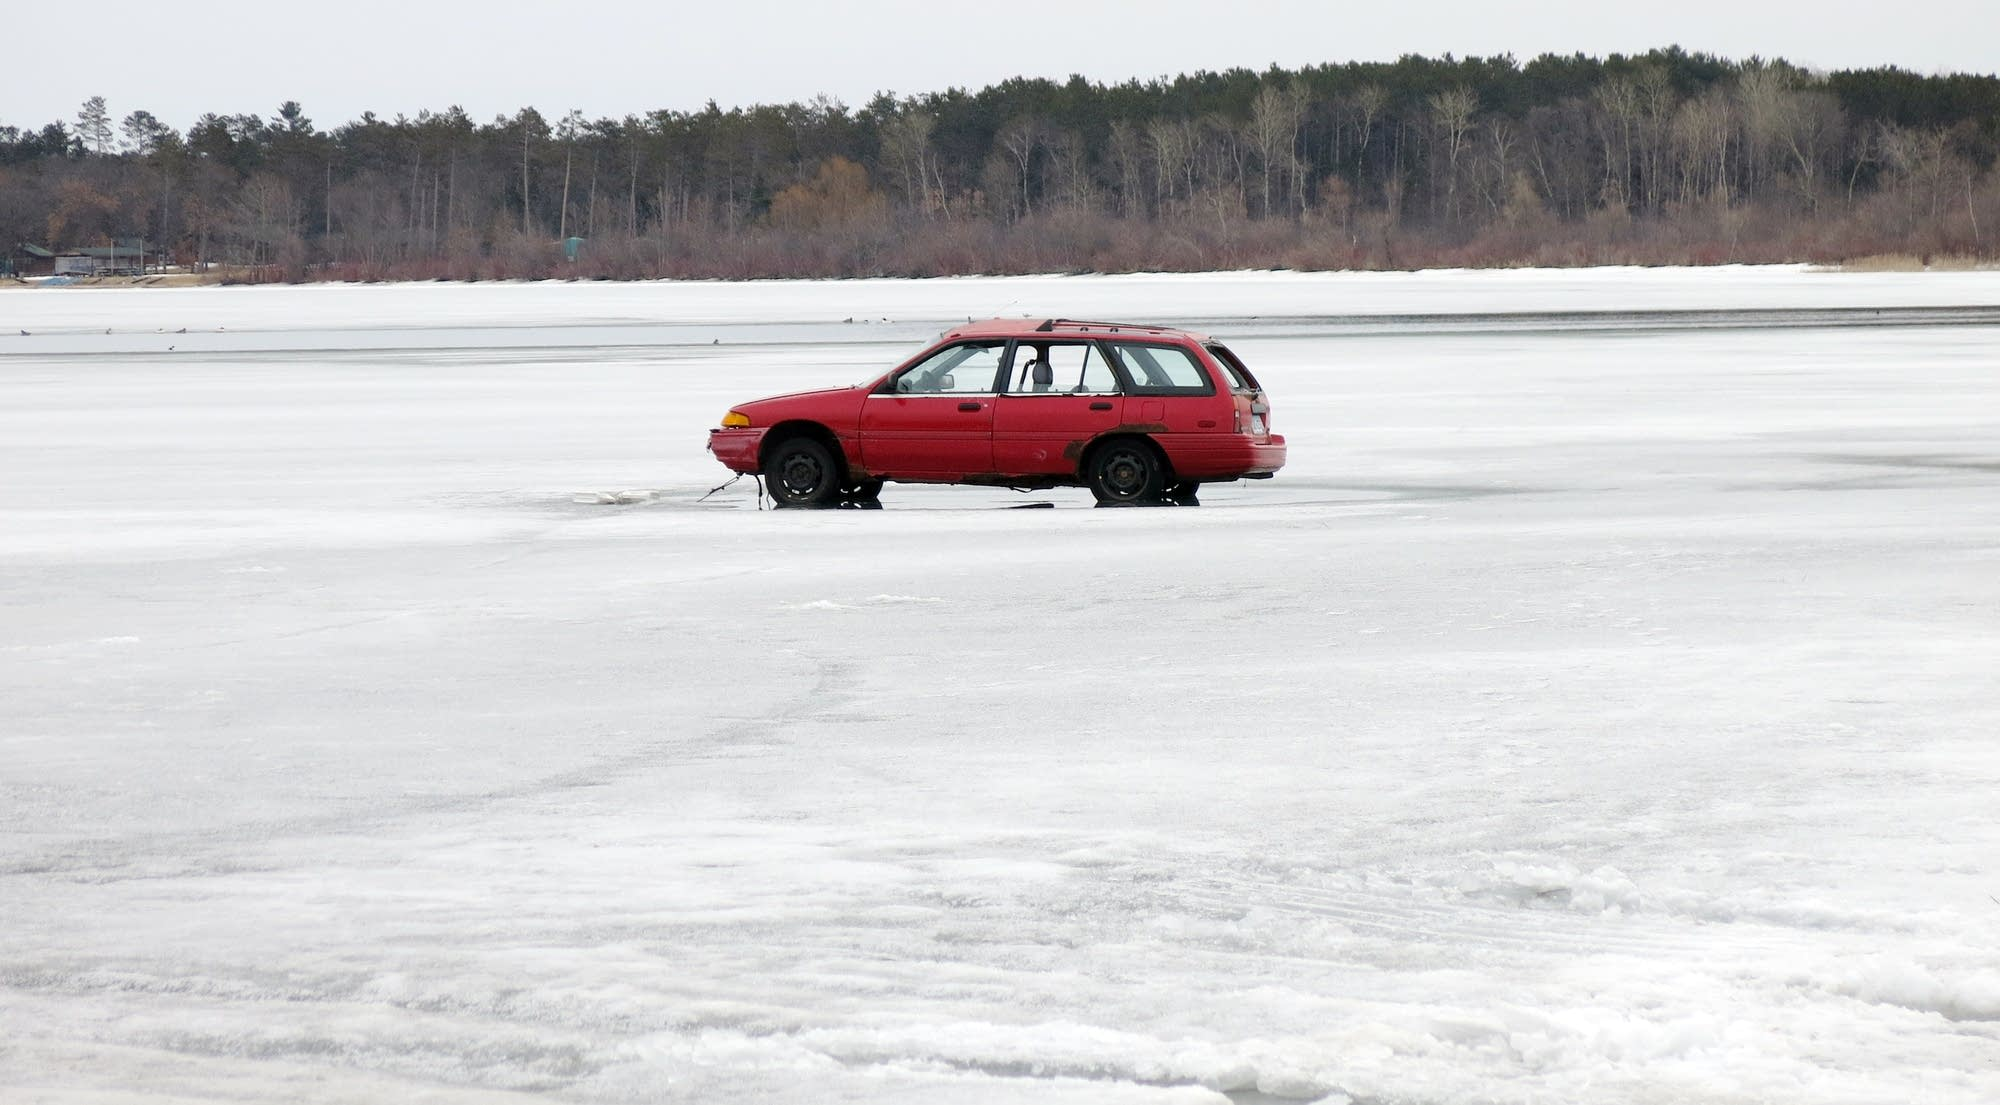 how long will it take for a car to fall through ice make a bet for